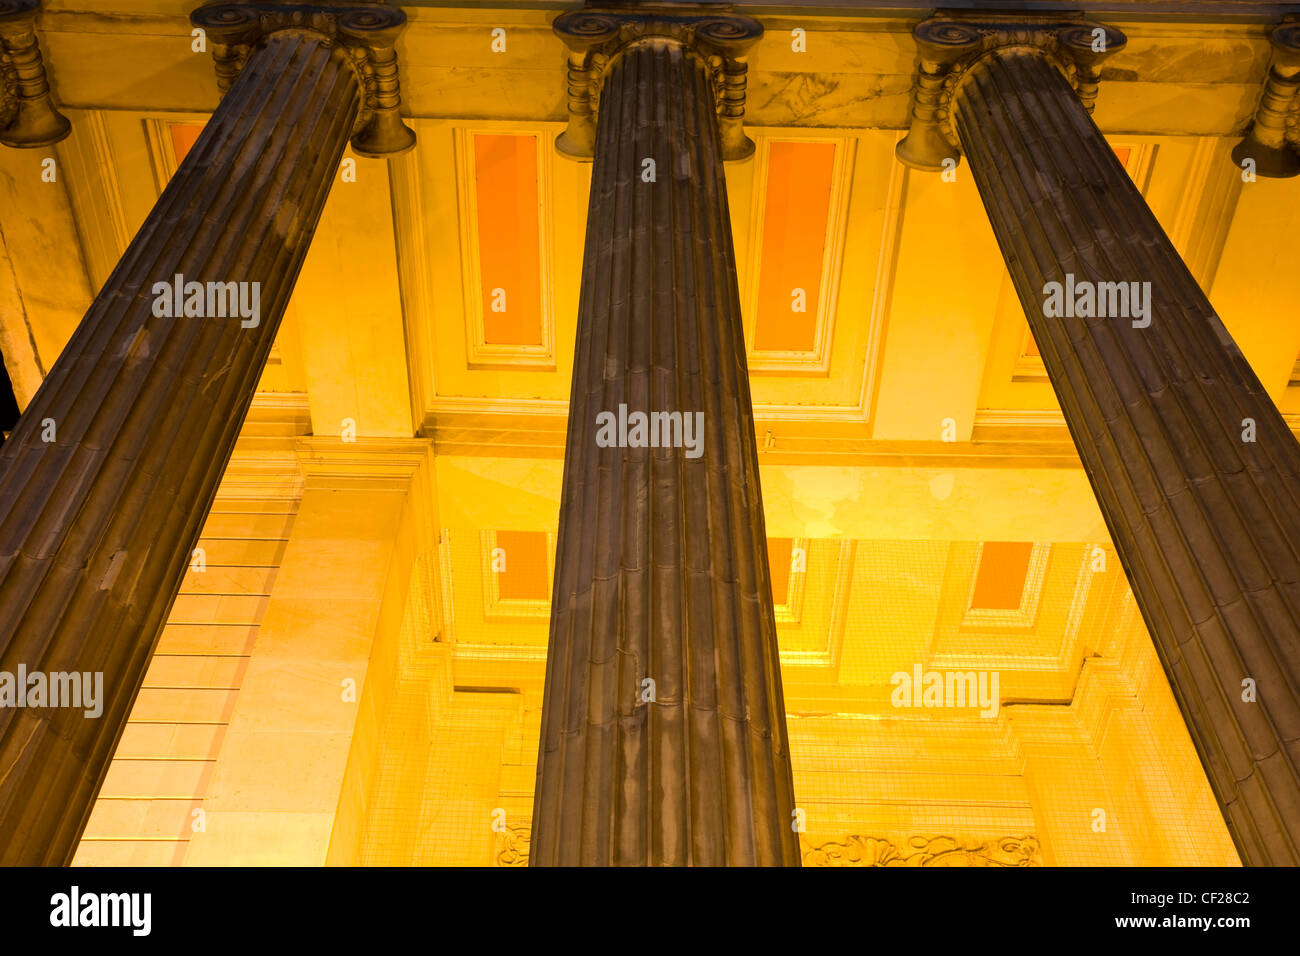 Pillars outside the Museum of the Royal College of Surgeons of Edinburgh. - Stock Image